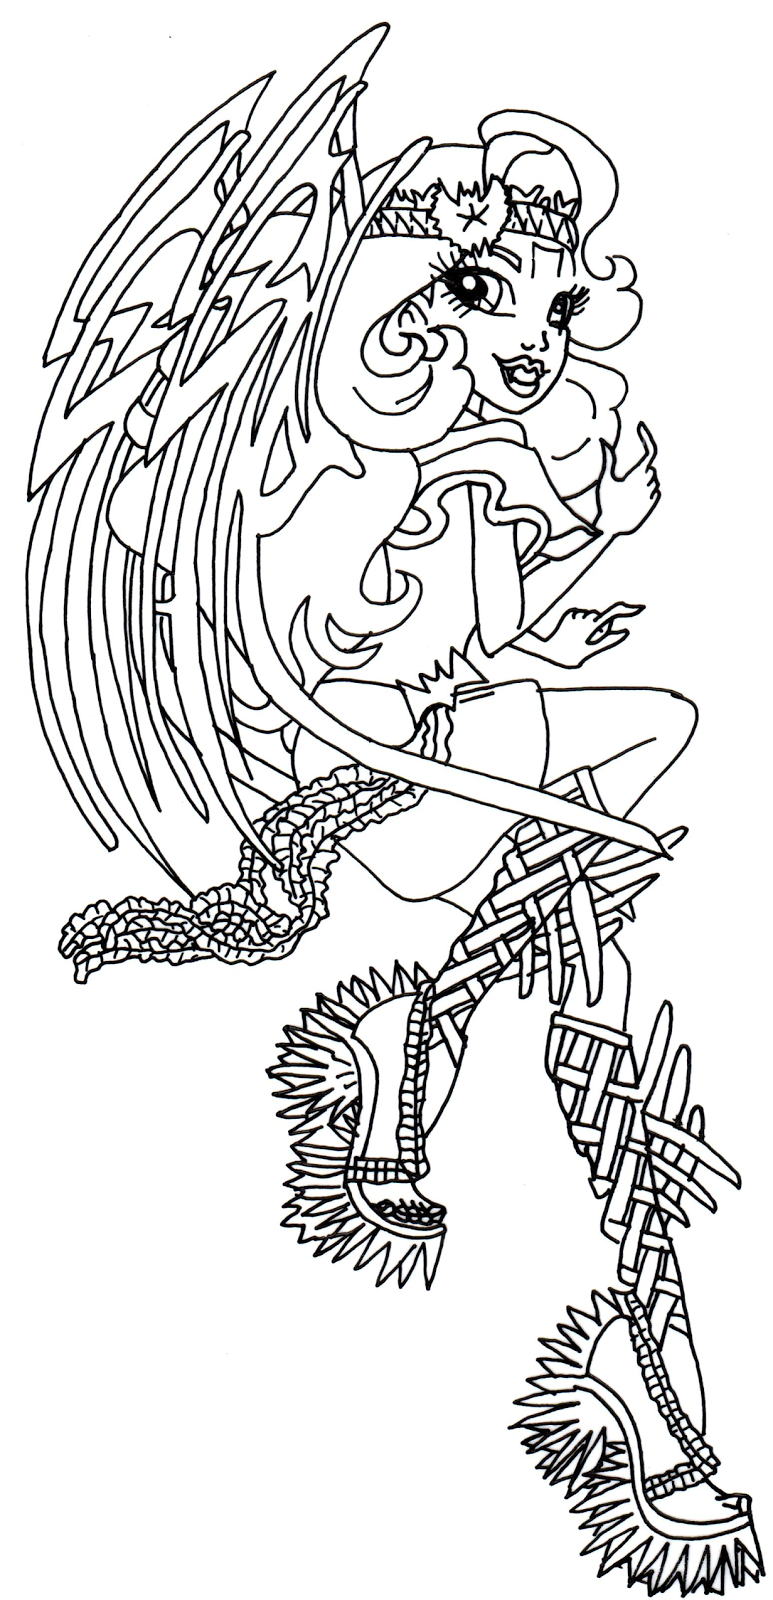 uguuj higher book coloring pages - photo#45